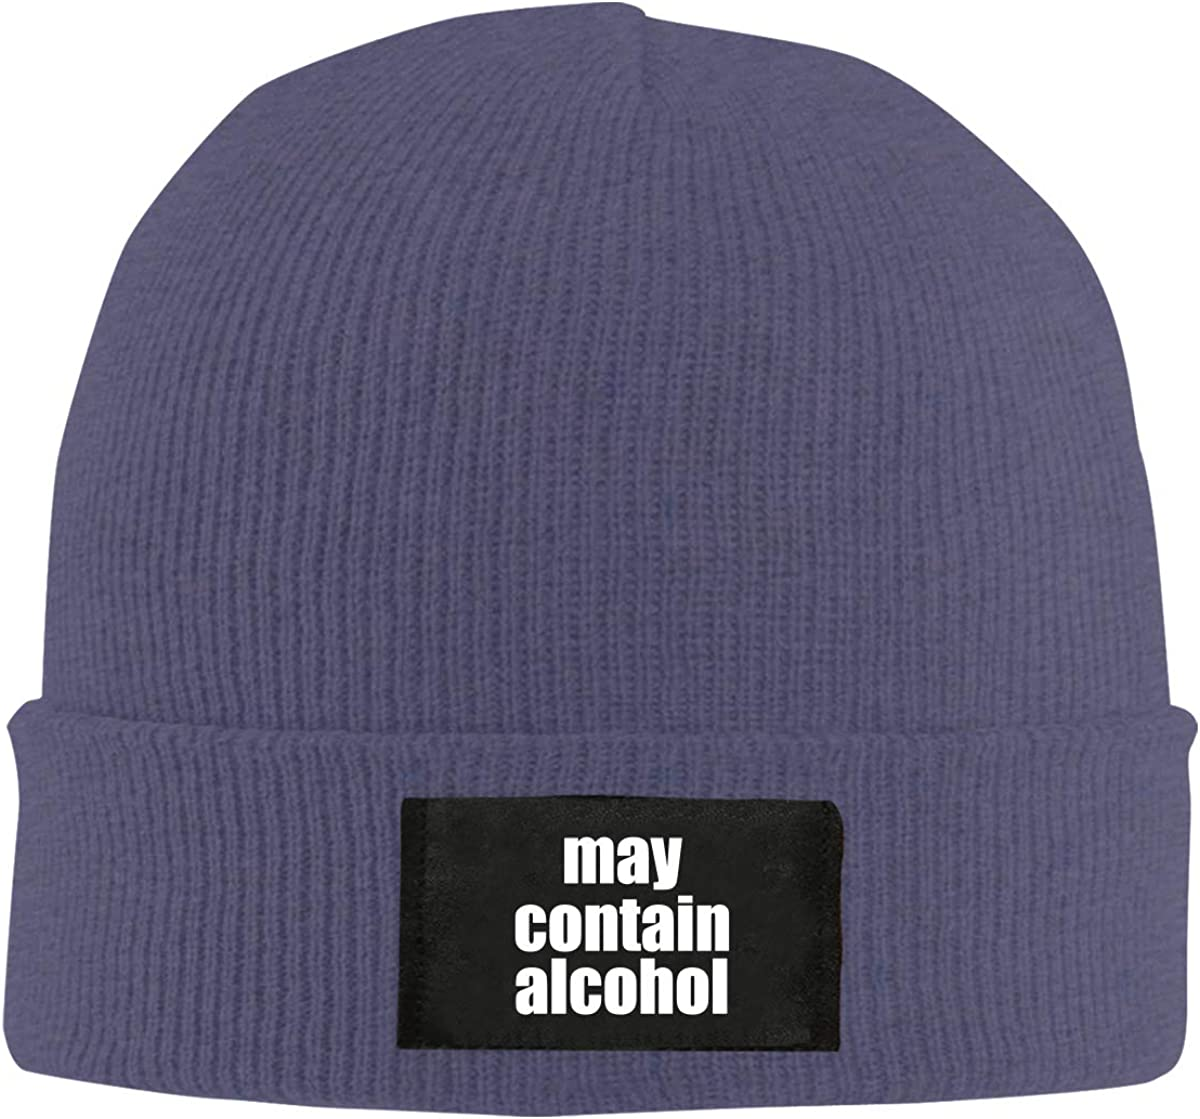 Xdinfong May Contain Alcohol Winter Beanie Hat Knit Hat Cap for Men /& Women